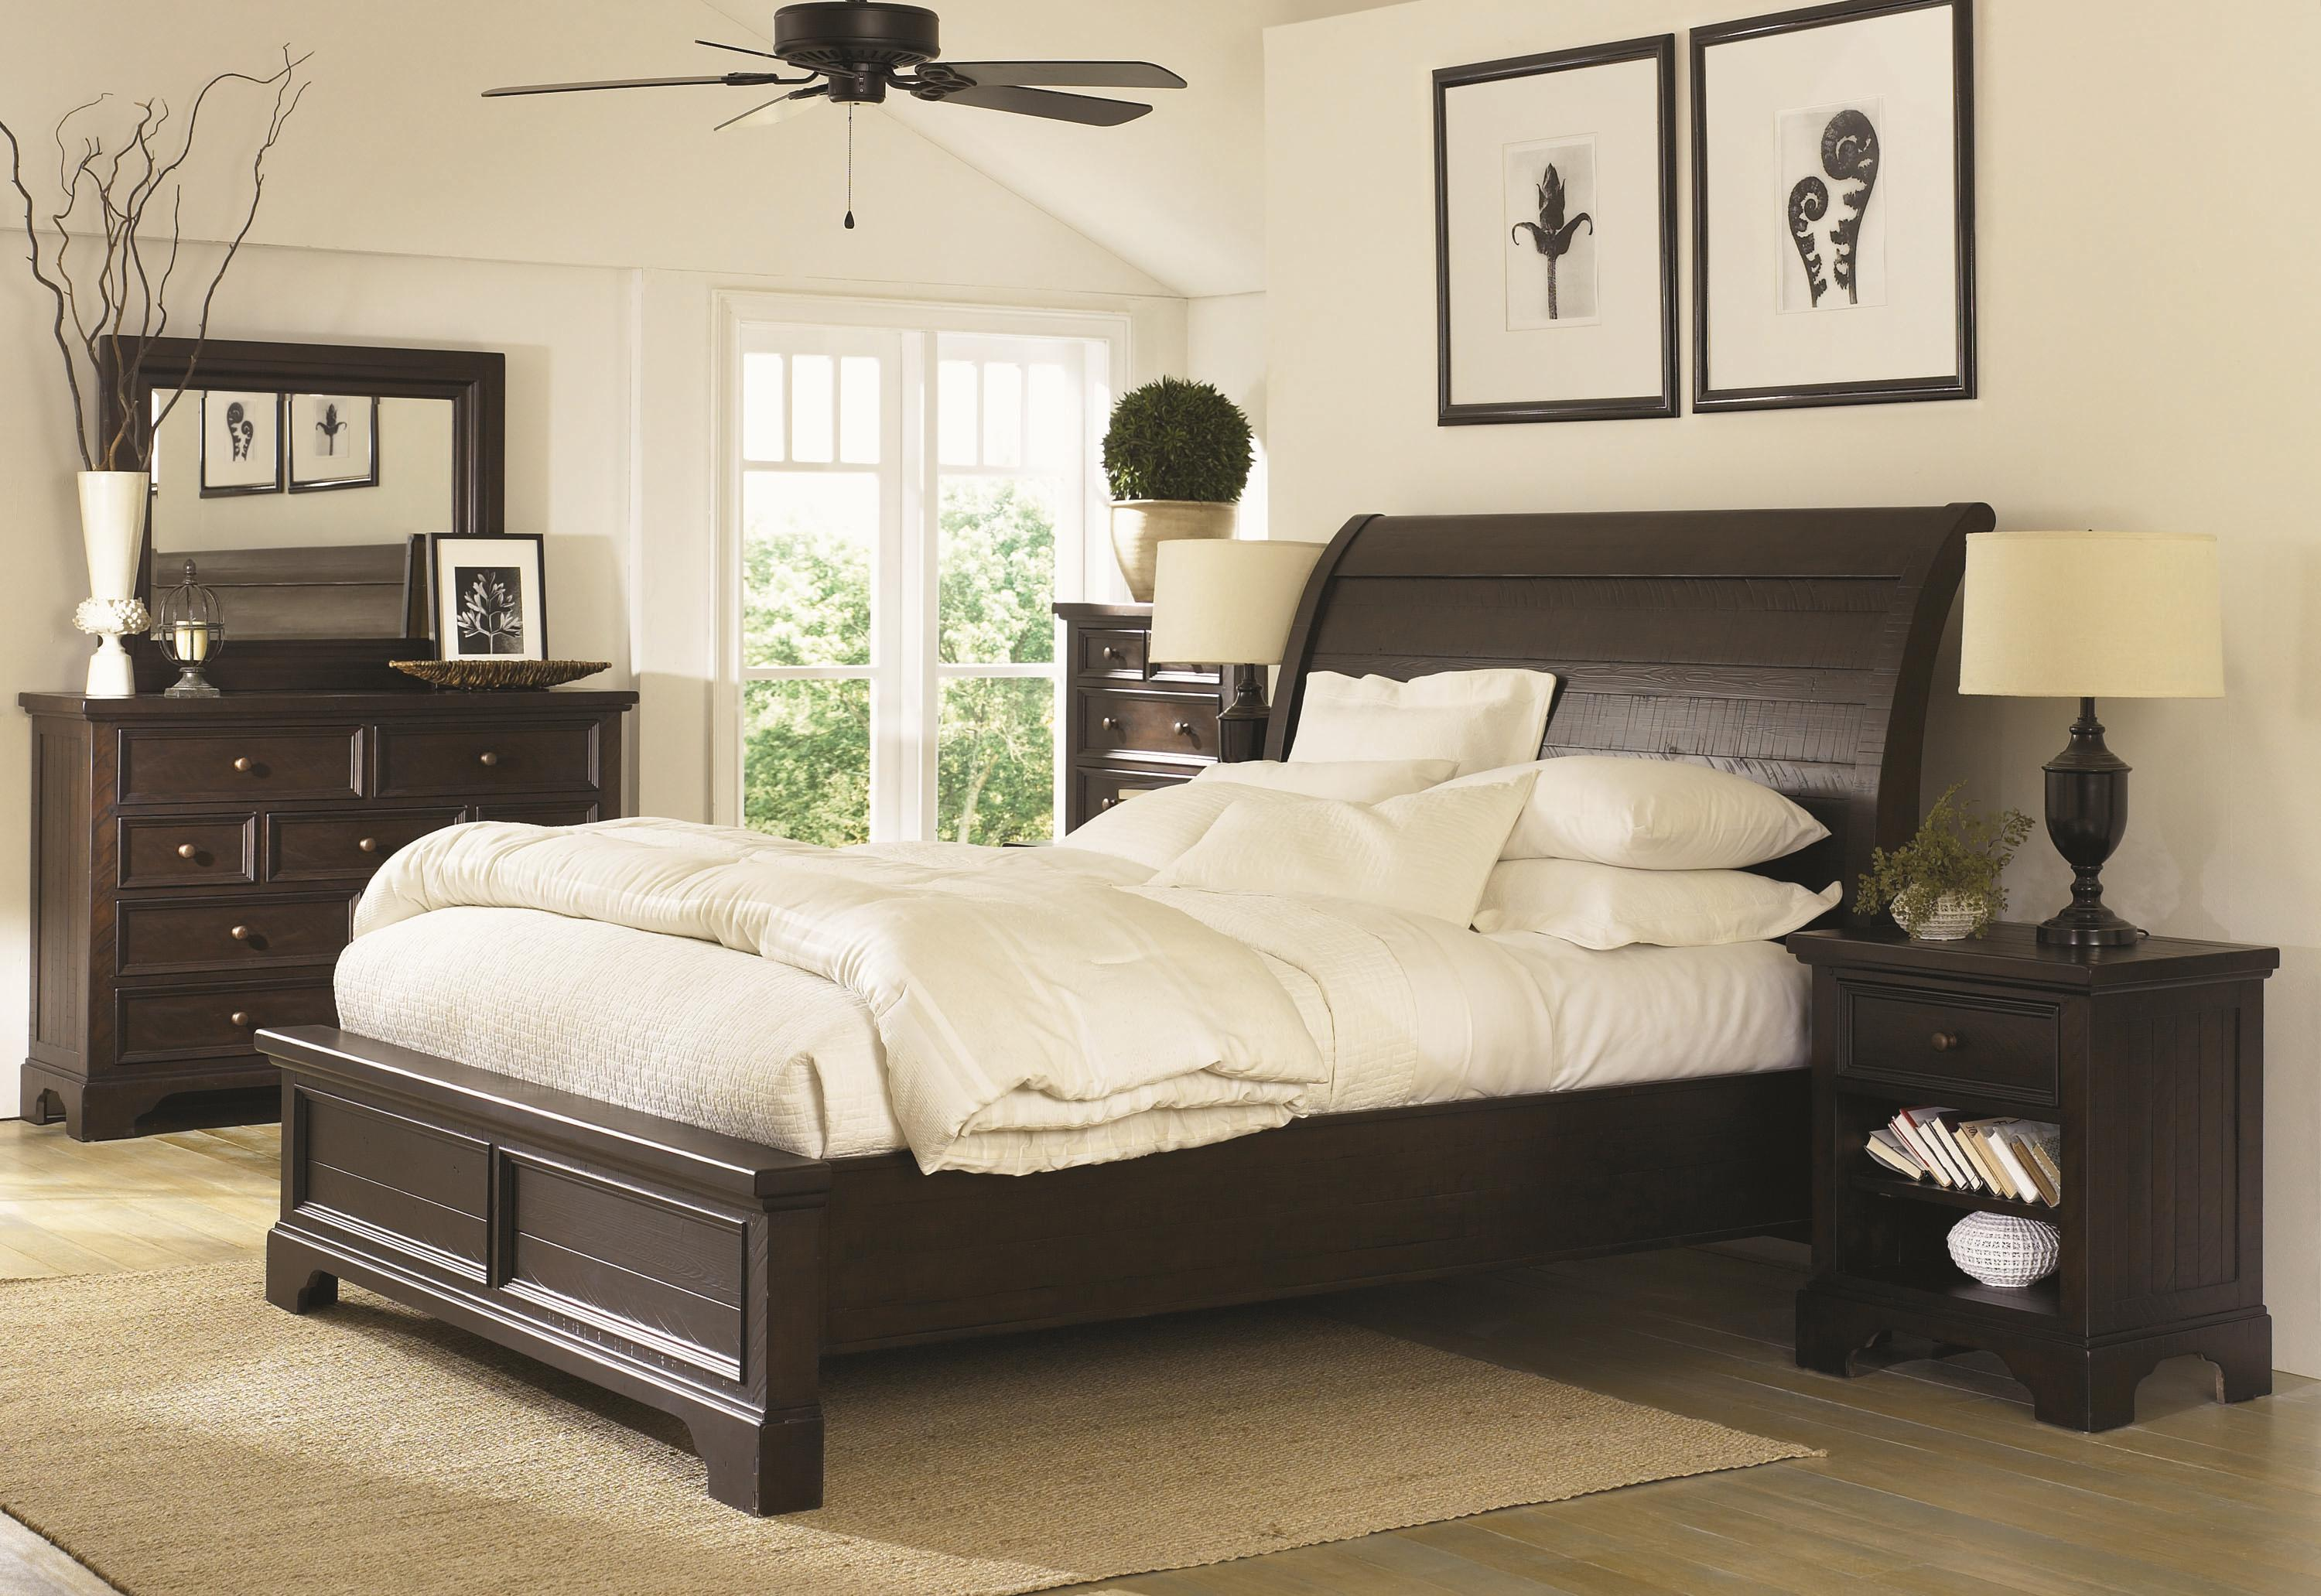 Aspenhome Bayfield California King Bedroom Group - Item Number: I70 CK Bedroom Group 1